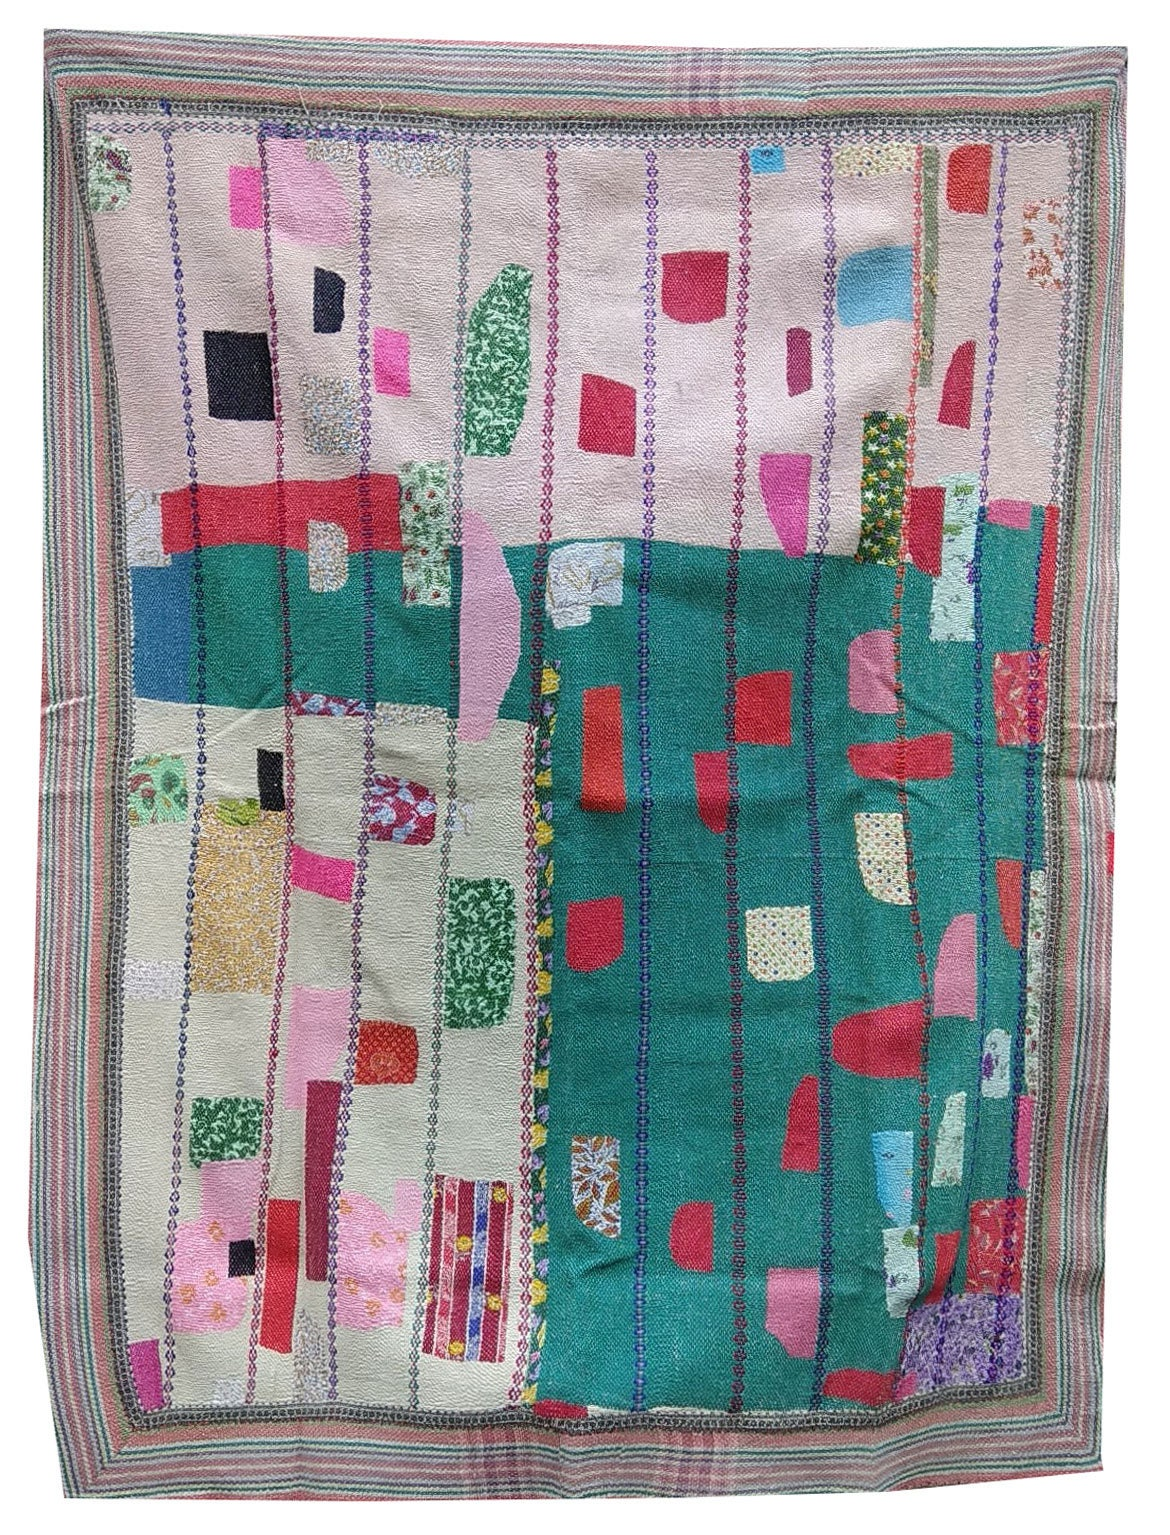 Vintage Kantha Embroidery WHITE  GREEN Reversible Quilt Kantha Bedspread Indian Blanket Kantha Throw Coverlet Decorative Throw